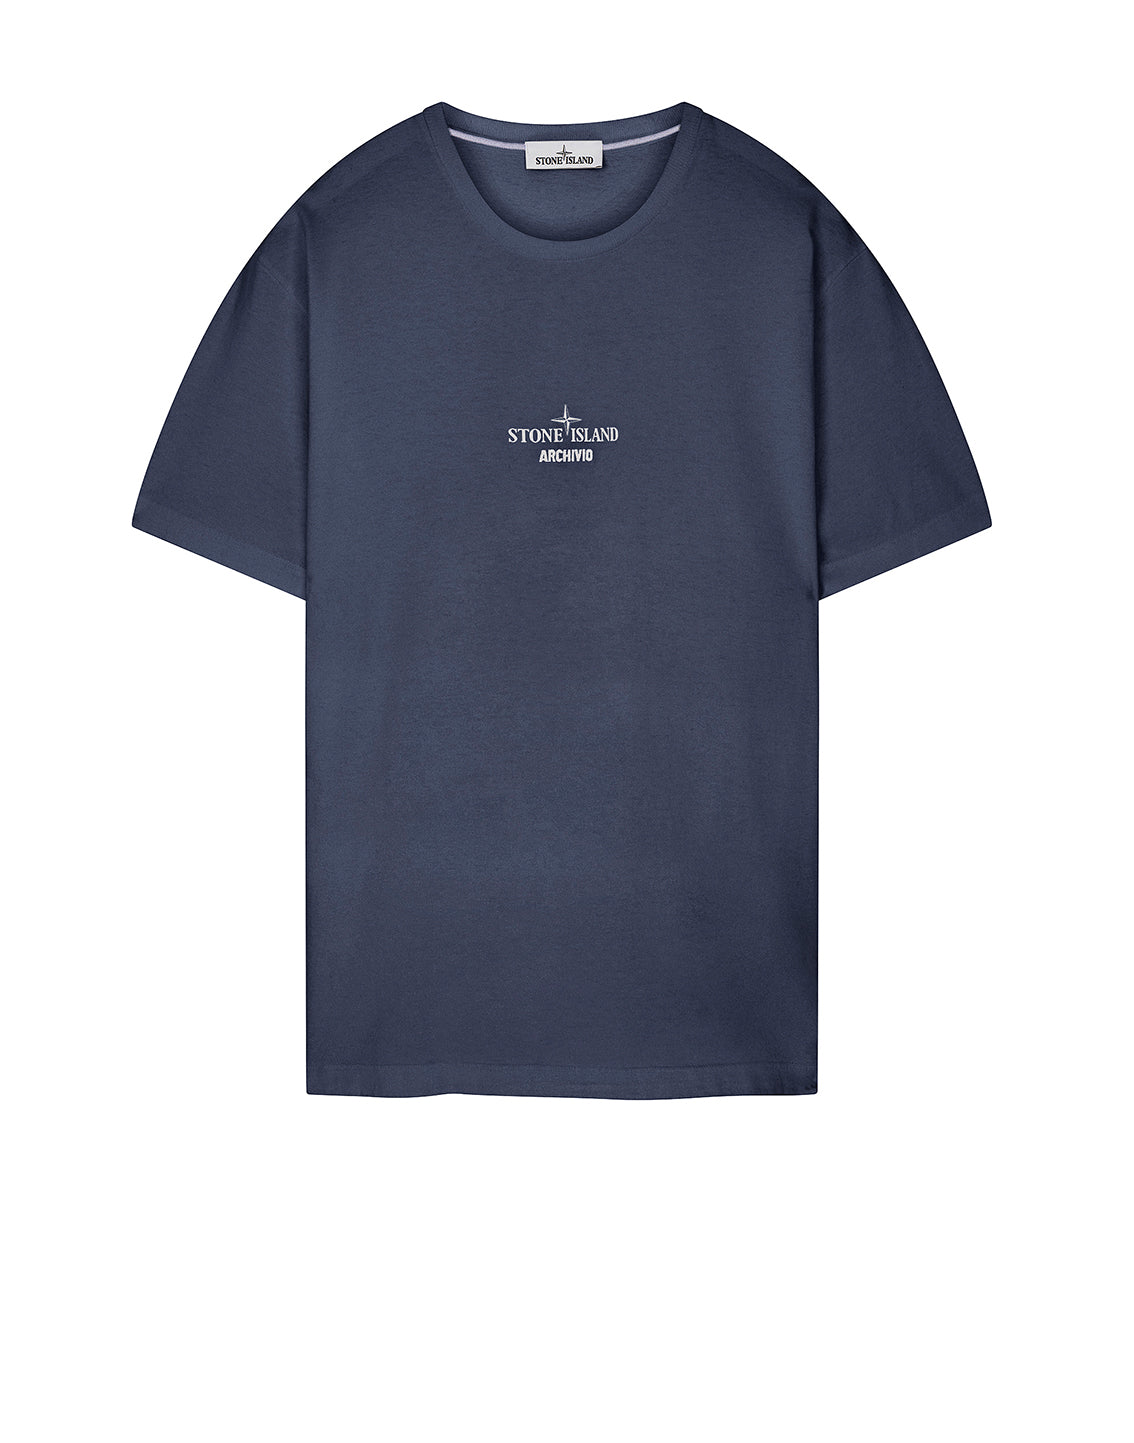 2Ns91 Short Sleeve T-Shirt in Marine Blue